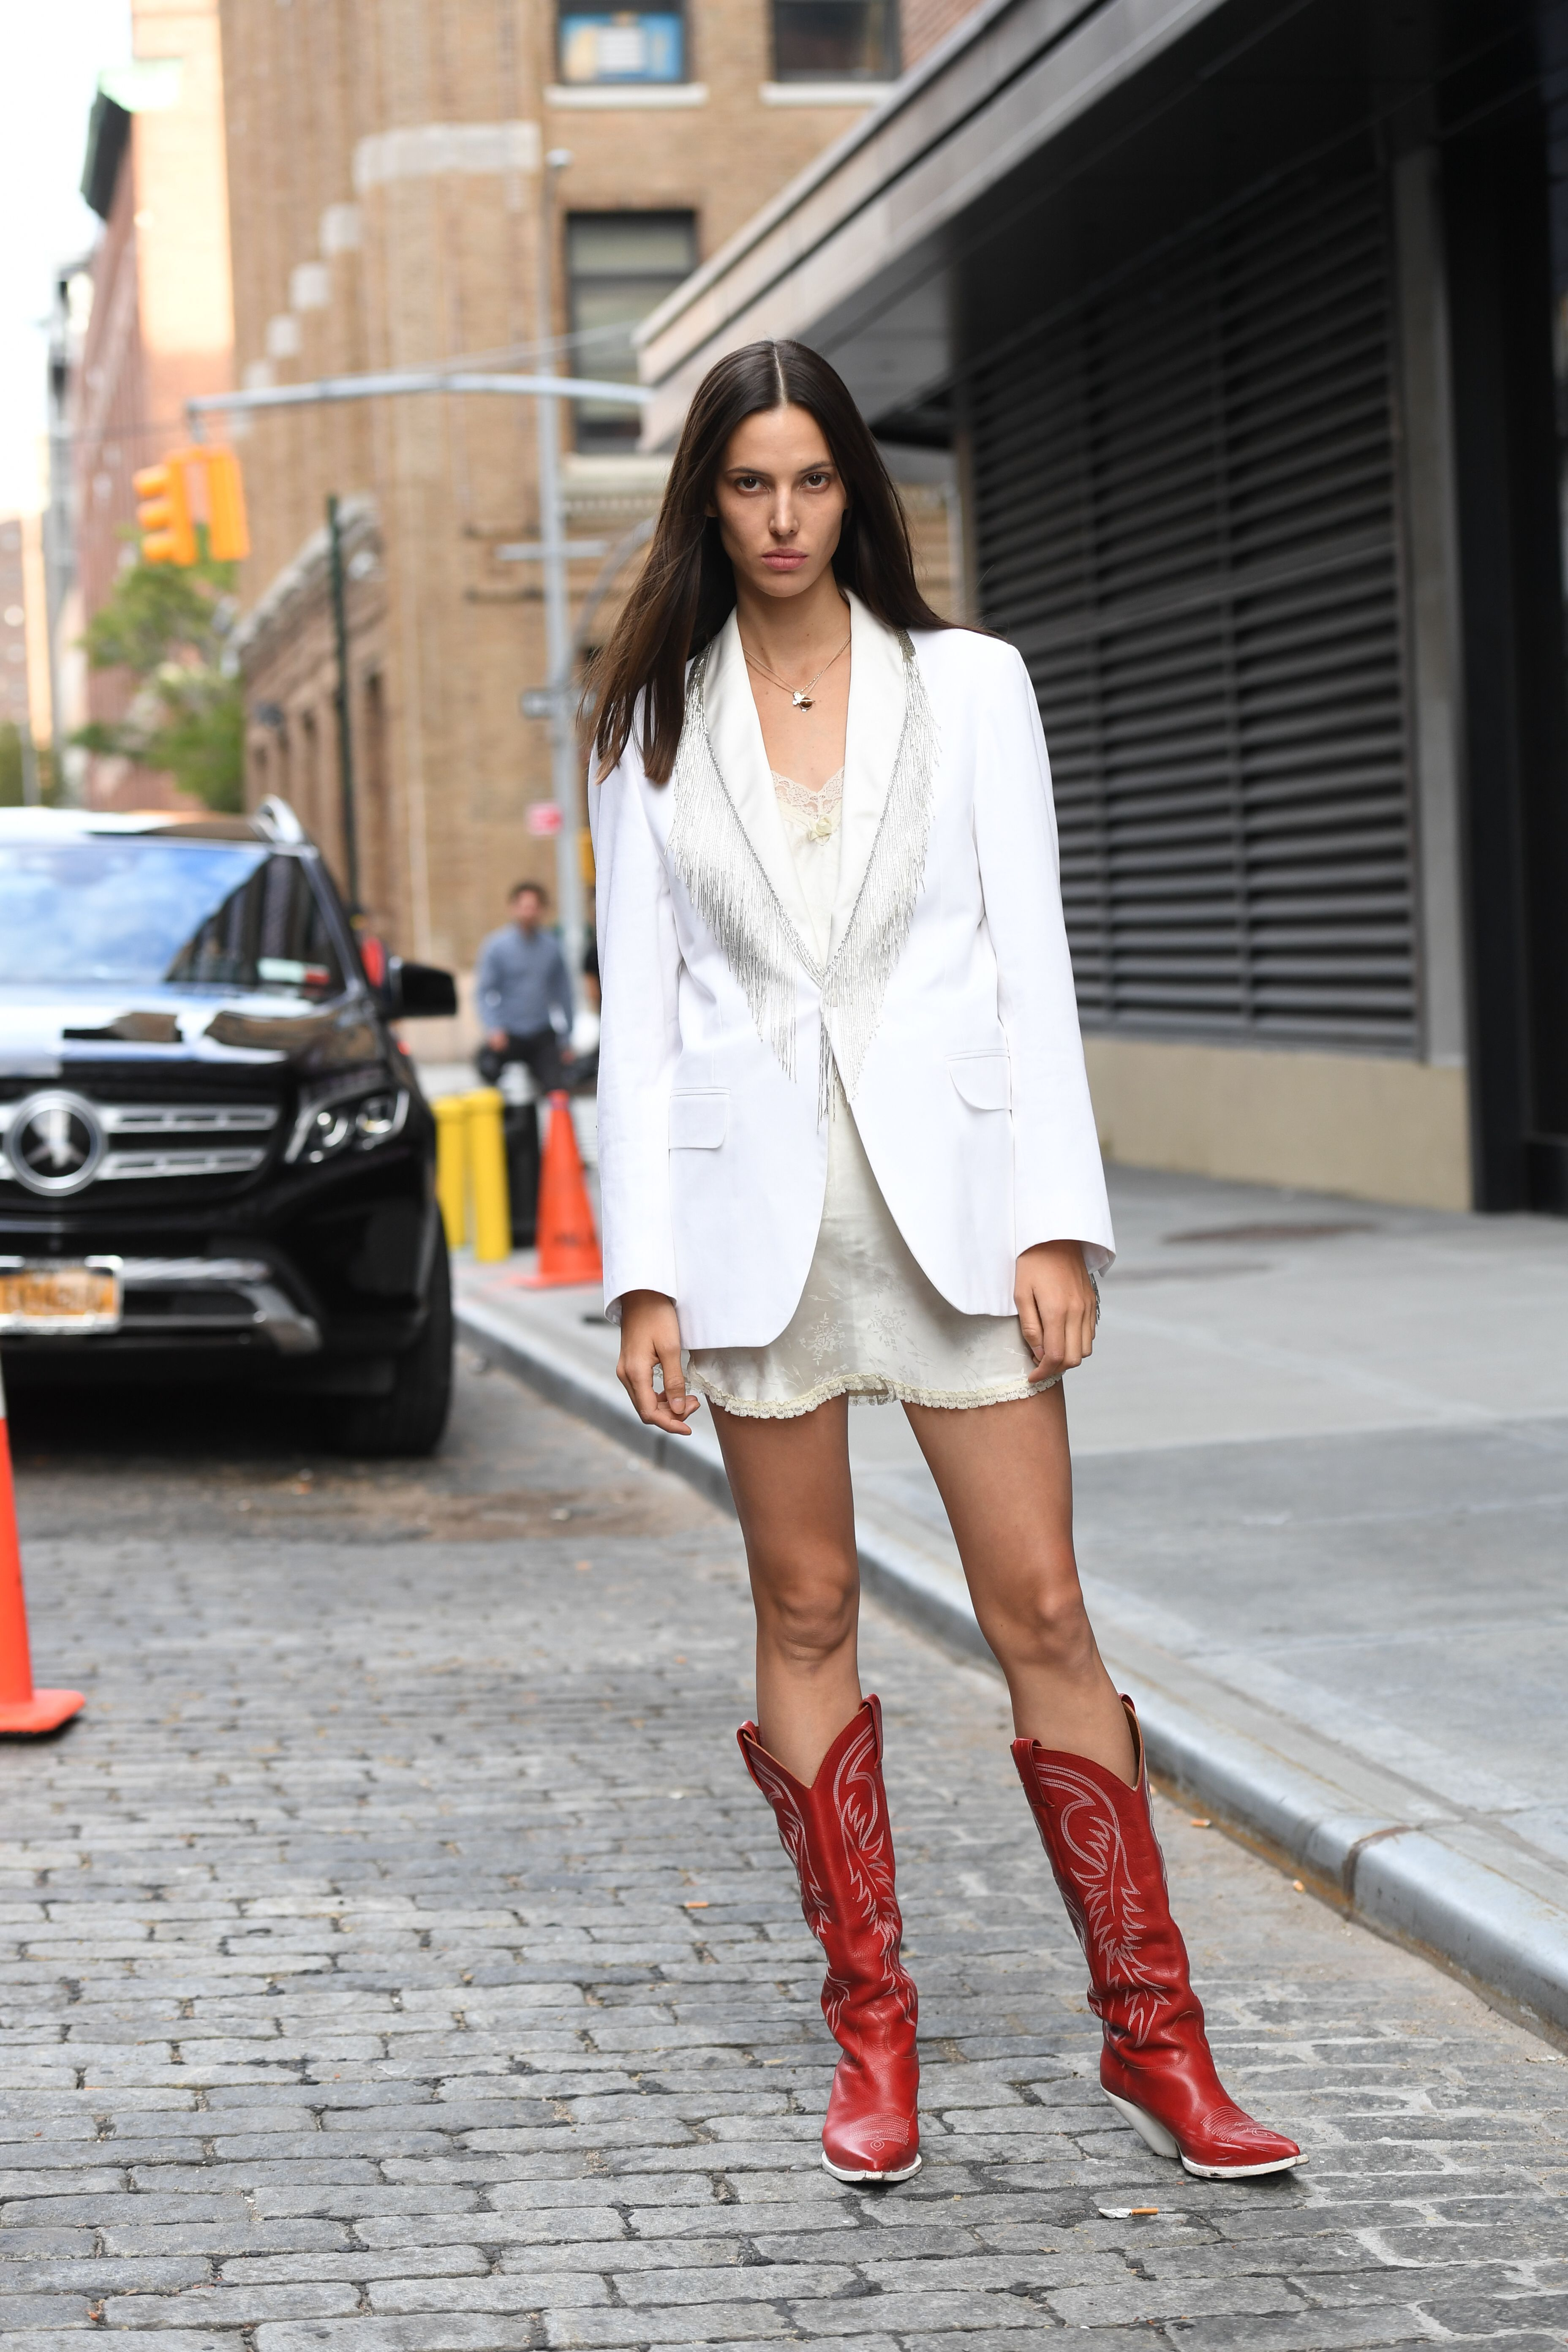 Mandatory Credit: Photo by Shutterstock (10404290ii) Ruby Aldridge Street Style, Spring Summer 2020, New York Fashion Week, USA - 07 Sep 2019